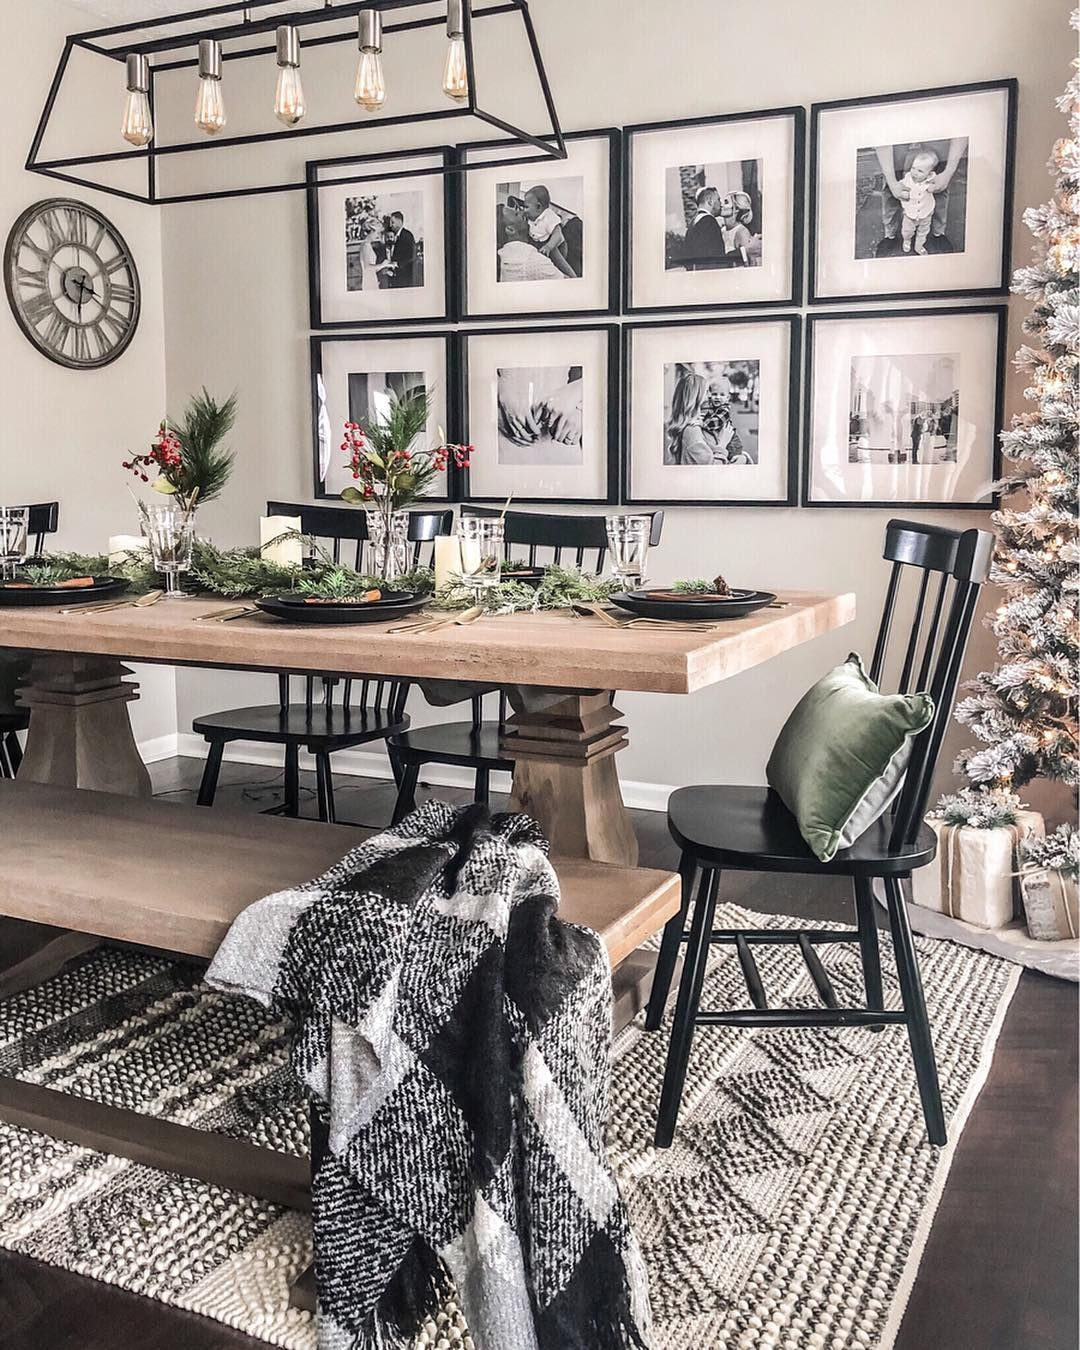 25 Casual Dining Room Wall Decor Ideas With Art And Paint Walldecorlivingroom Walldecorlivingro Farm House Living Room Casual Dining Rooms Black Dining Room